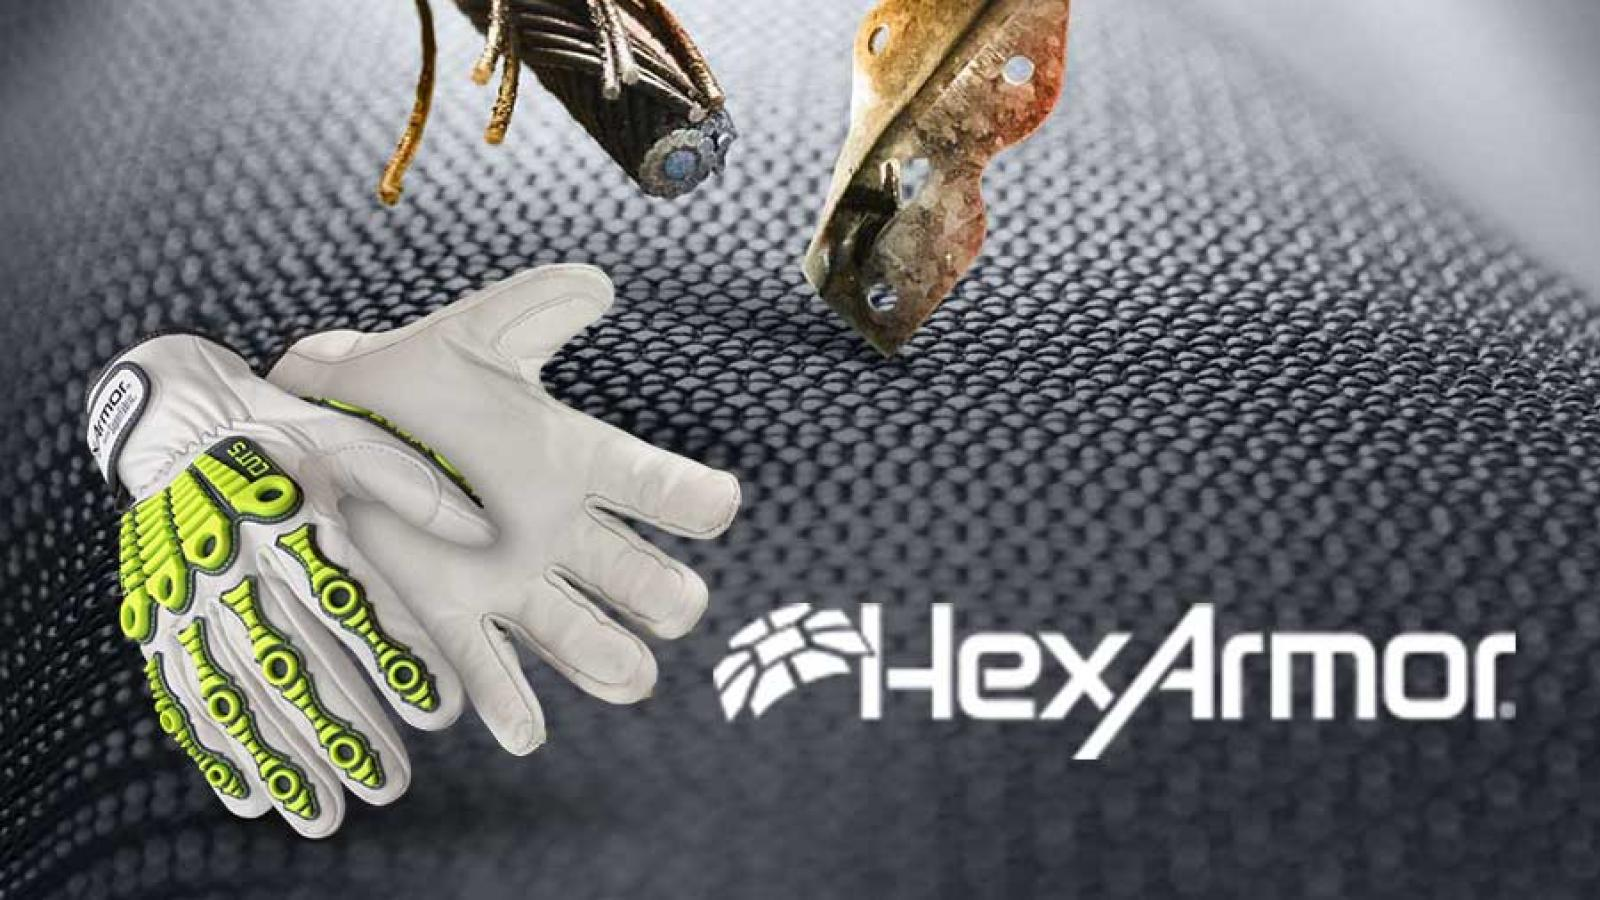 Gants de protection HexArmor